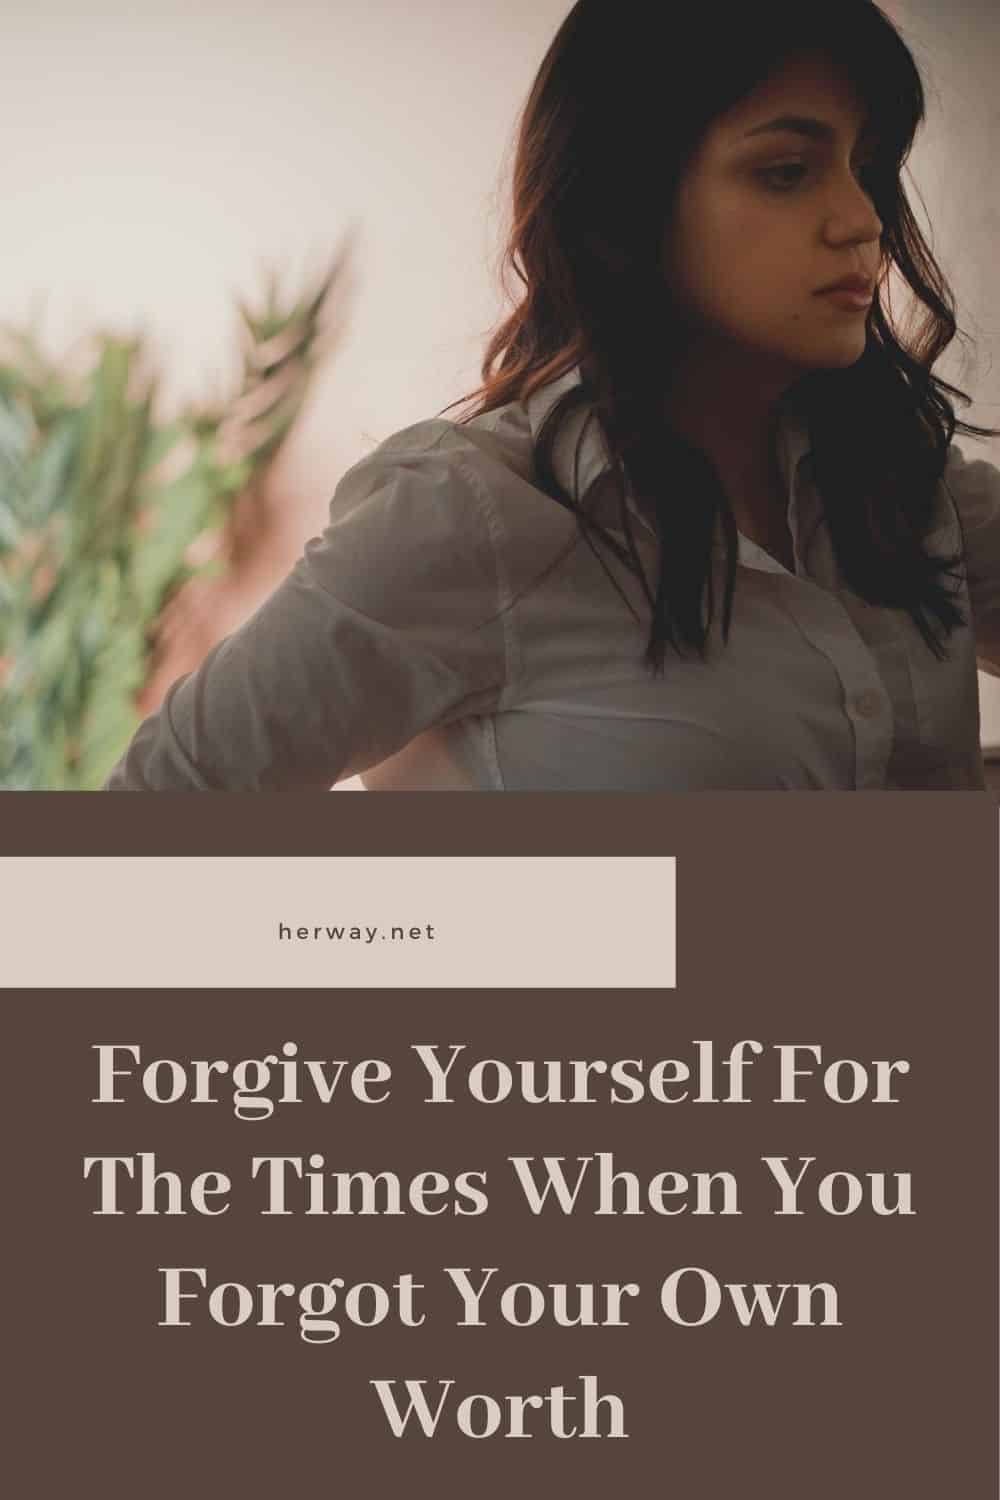 Forgive Yourself For The Times When You Forgot Your Own Worth